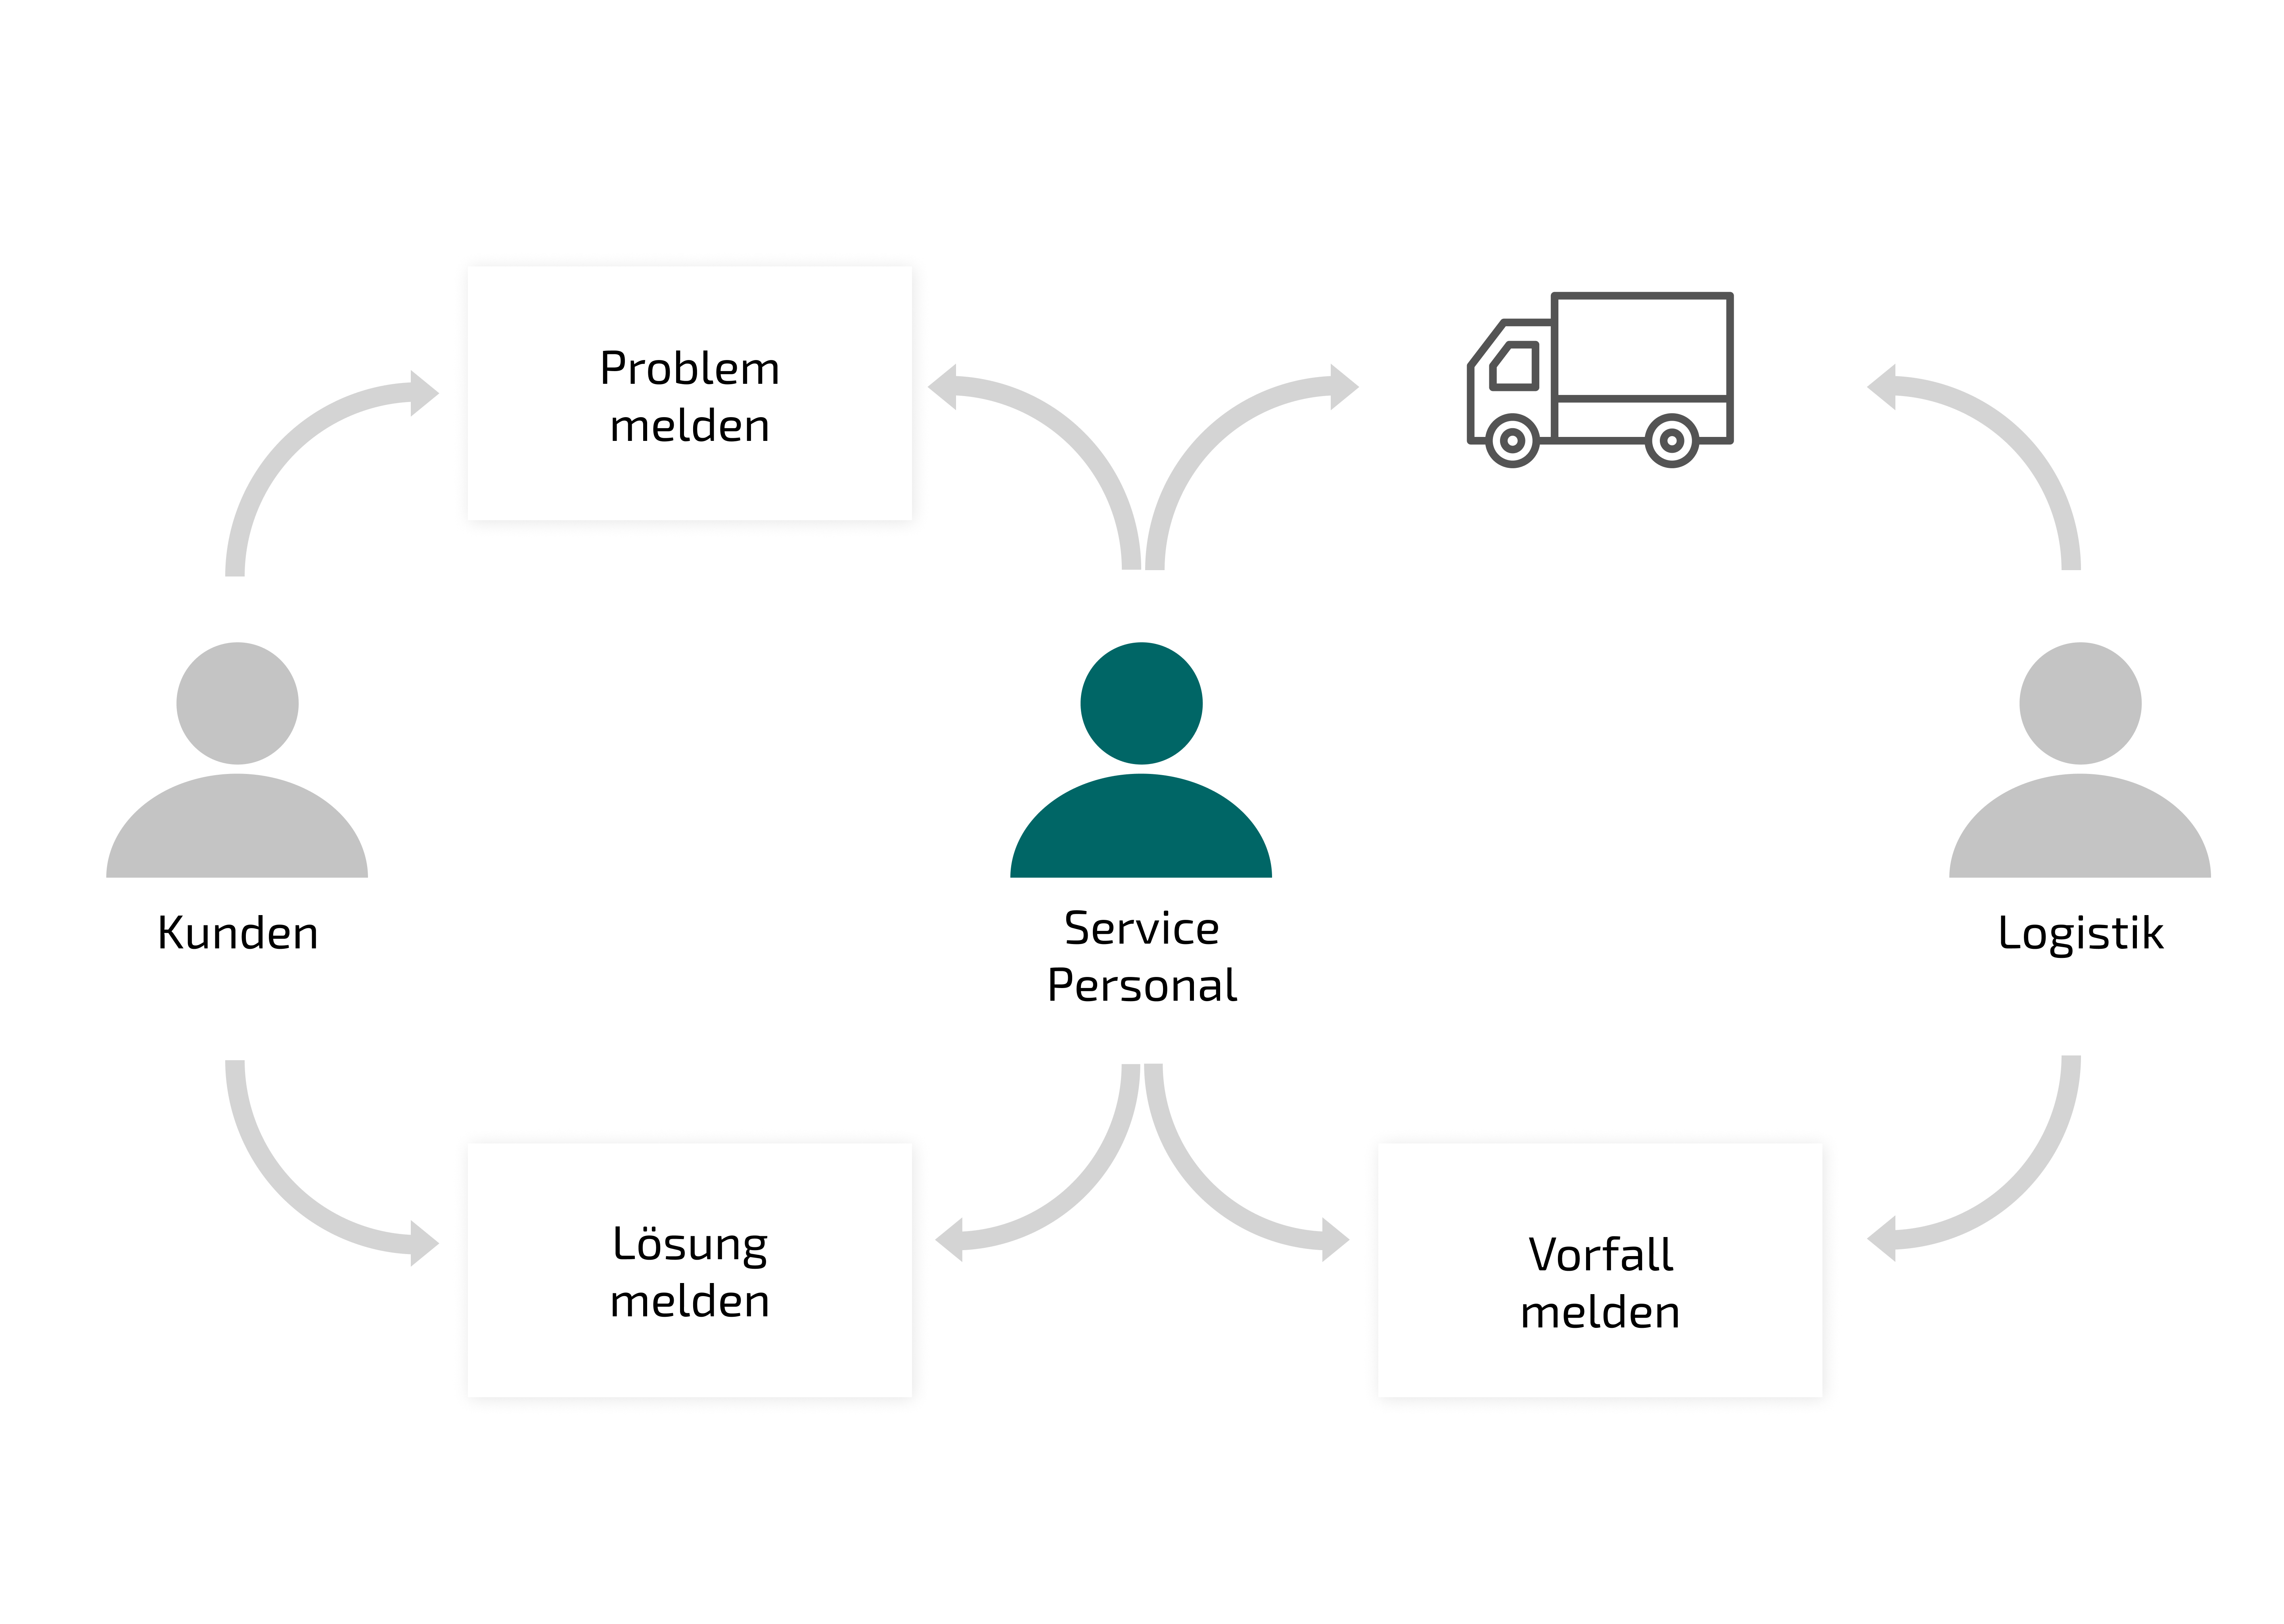 Digitization up to the customer front, example production. Illustration of a process